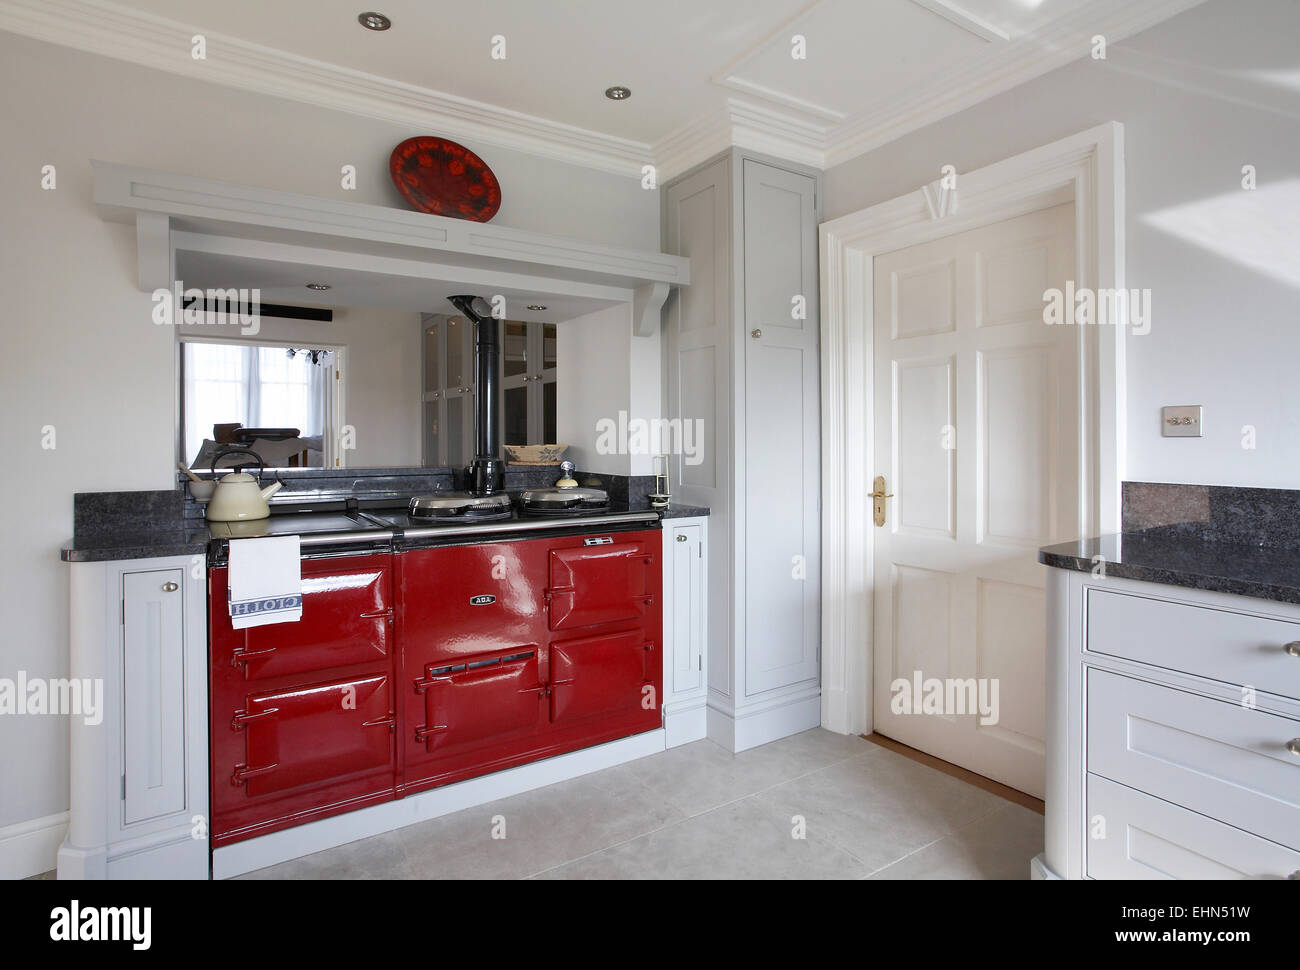 A red aga cooker in a modern kitchen in a home in the uk for Modern kitchen design with aga